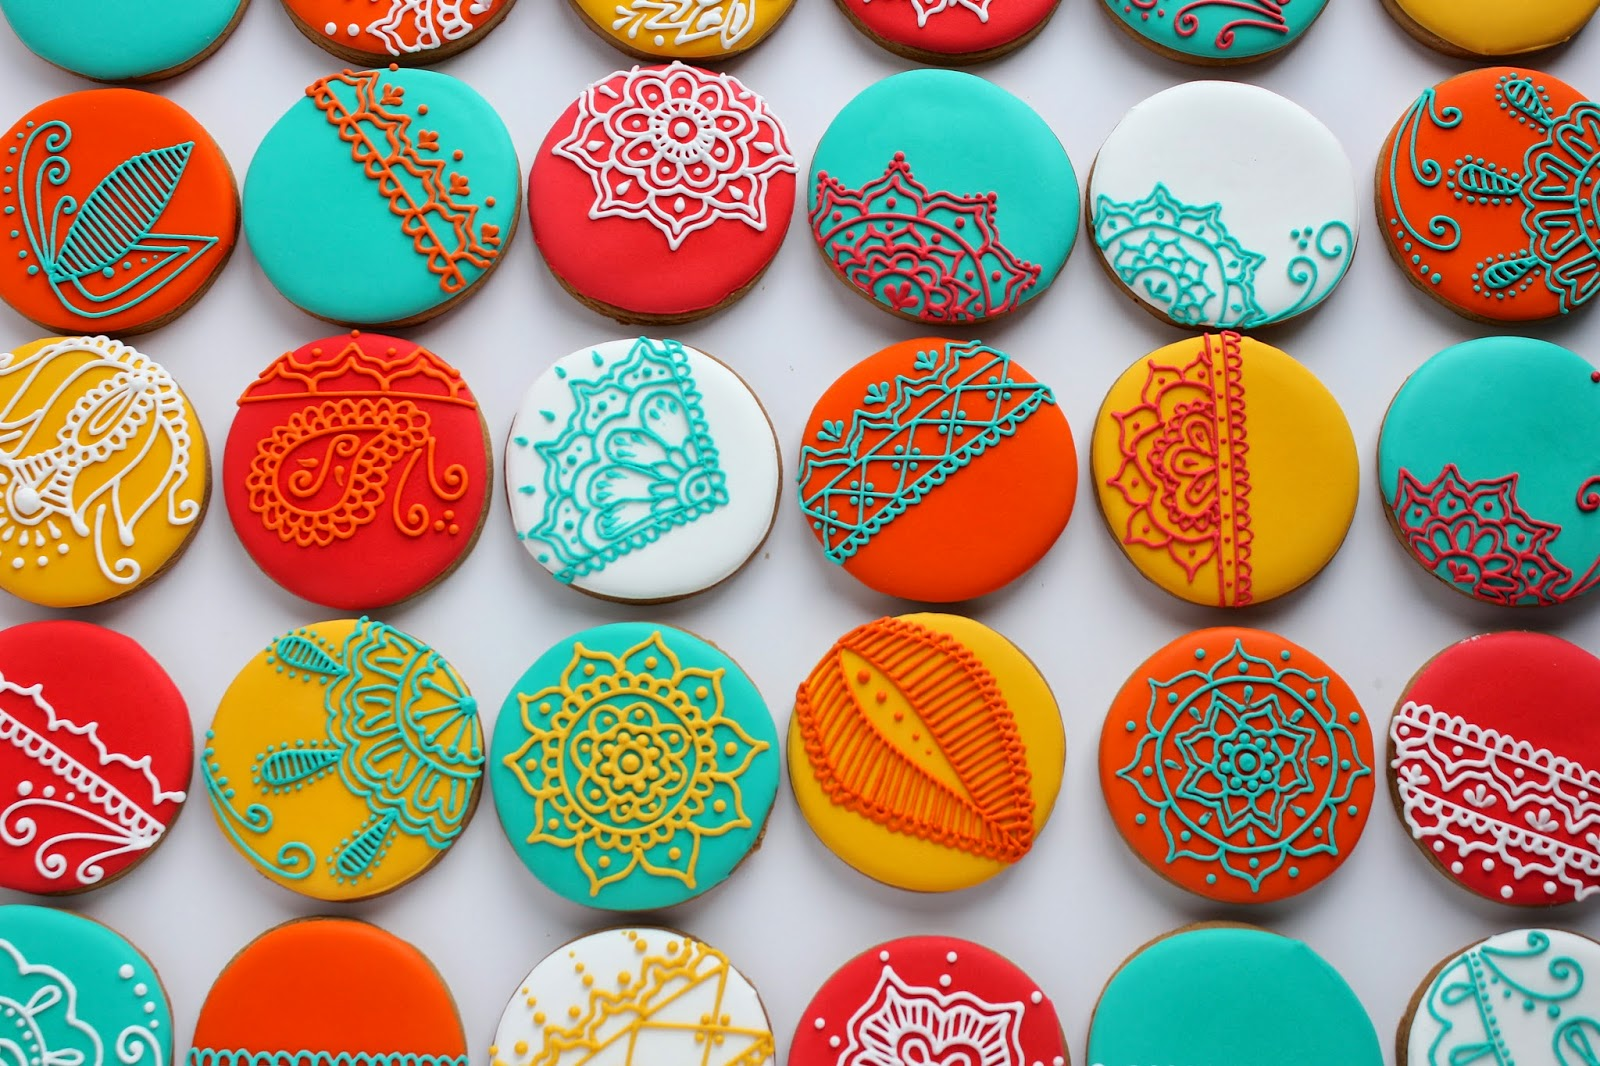 Sugar Bea39s Blog Henna Inspired Christmas Cookies For Some VERY